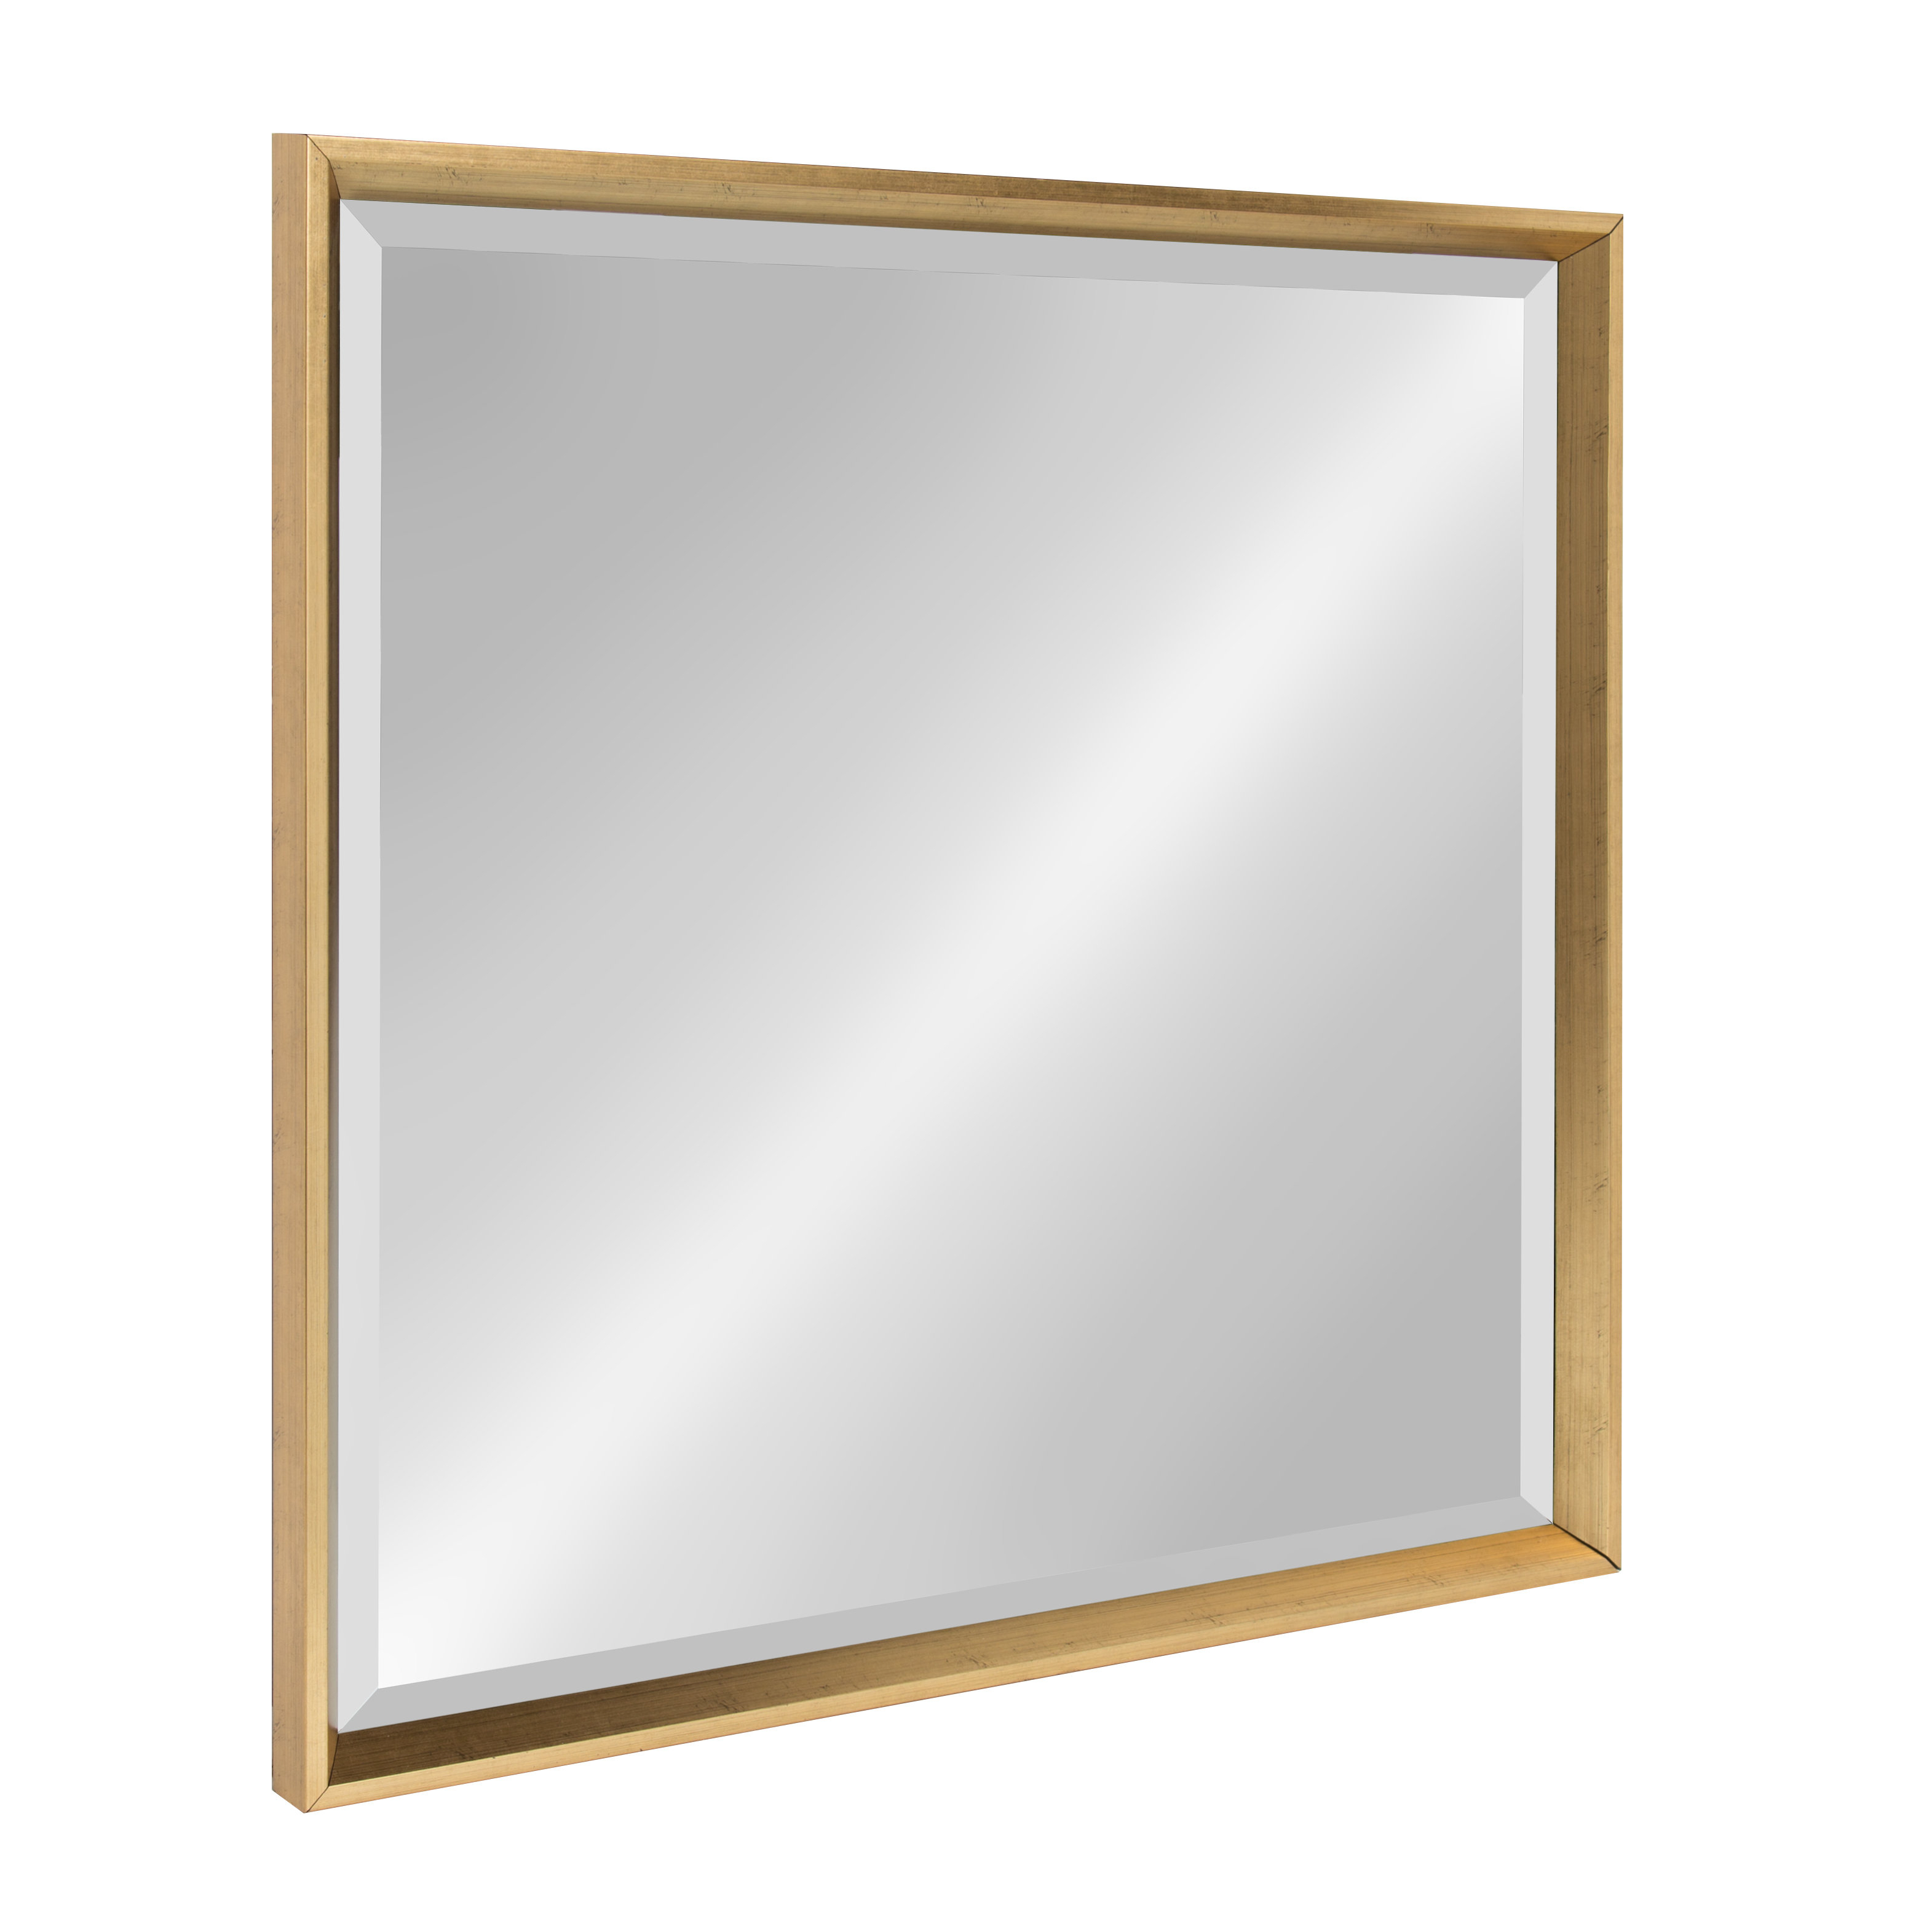 Greyleigh Sundown Framed Glam Beveled Accent Mirror Intended For Lugo Rectangle Accent Mirrors (Image 7 of 20)